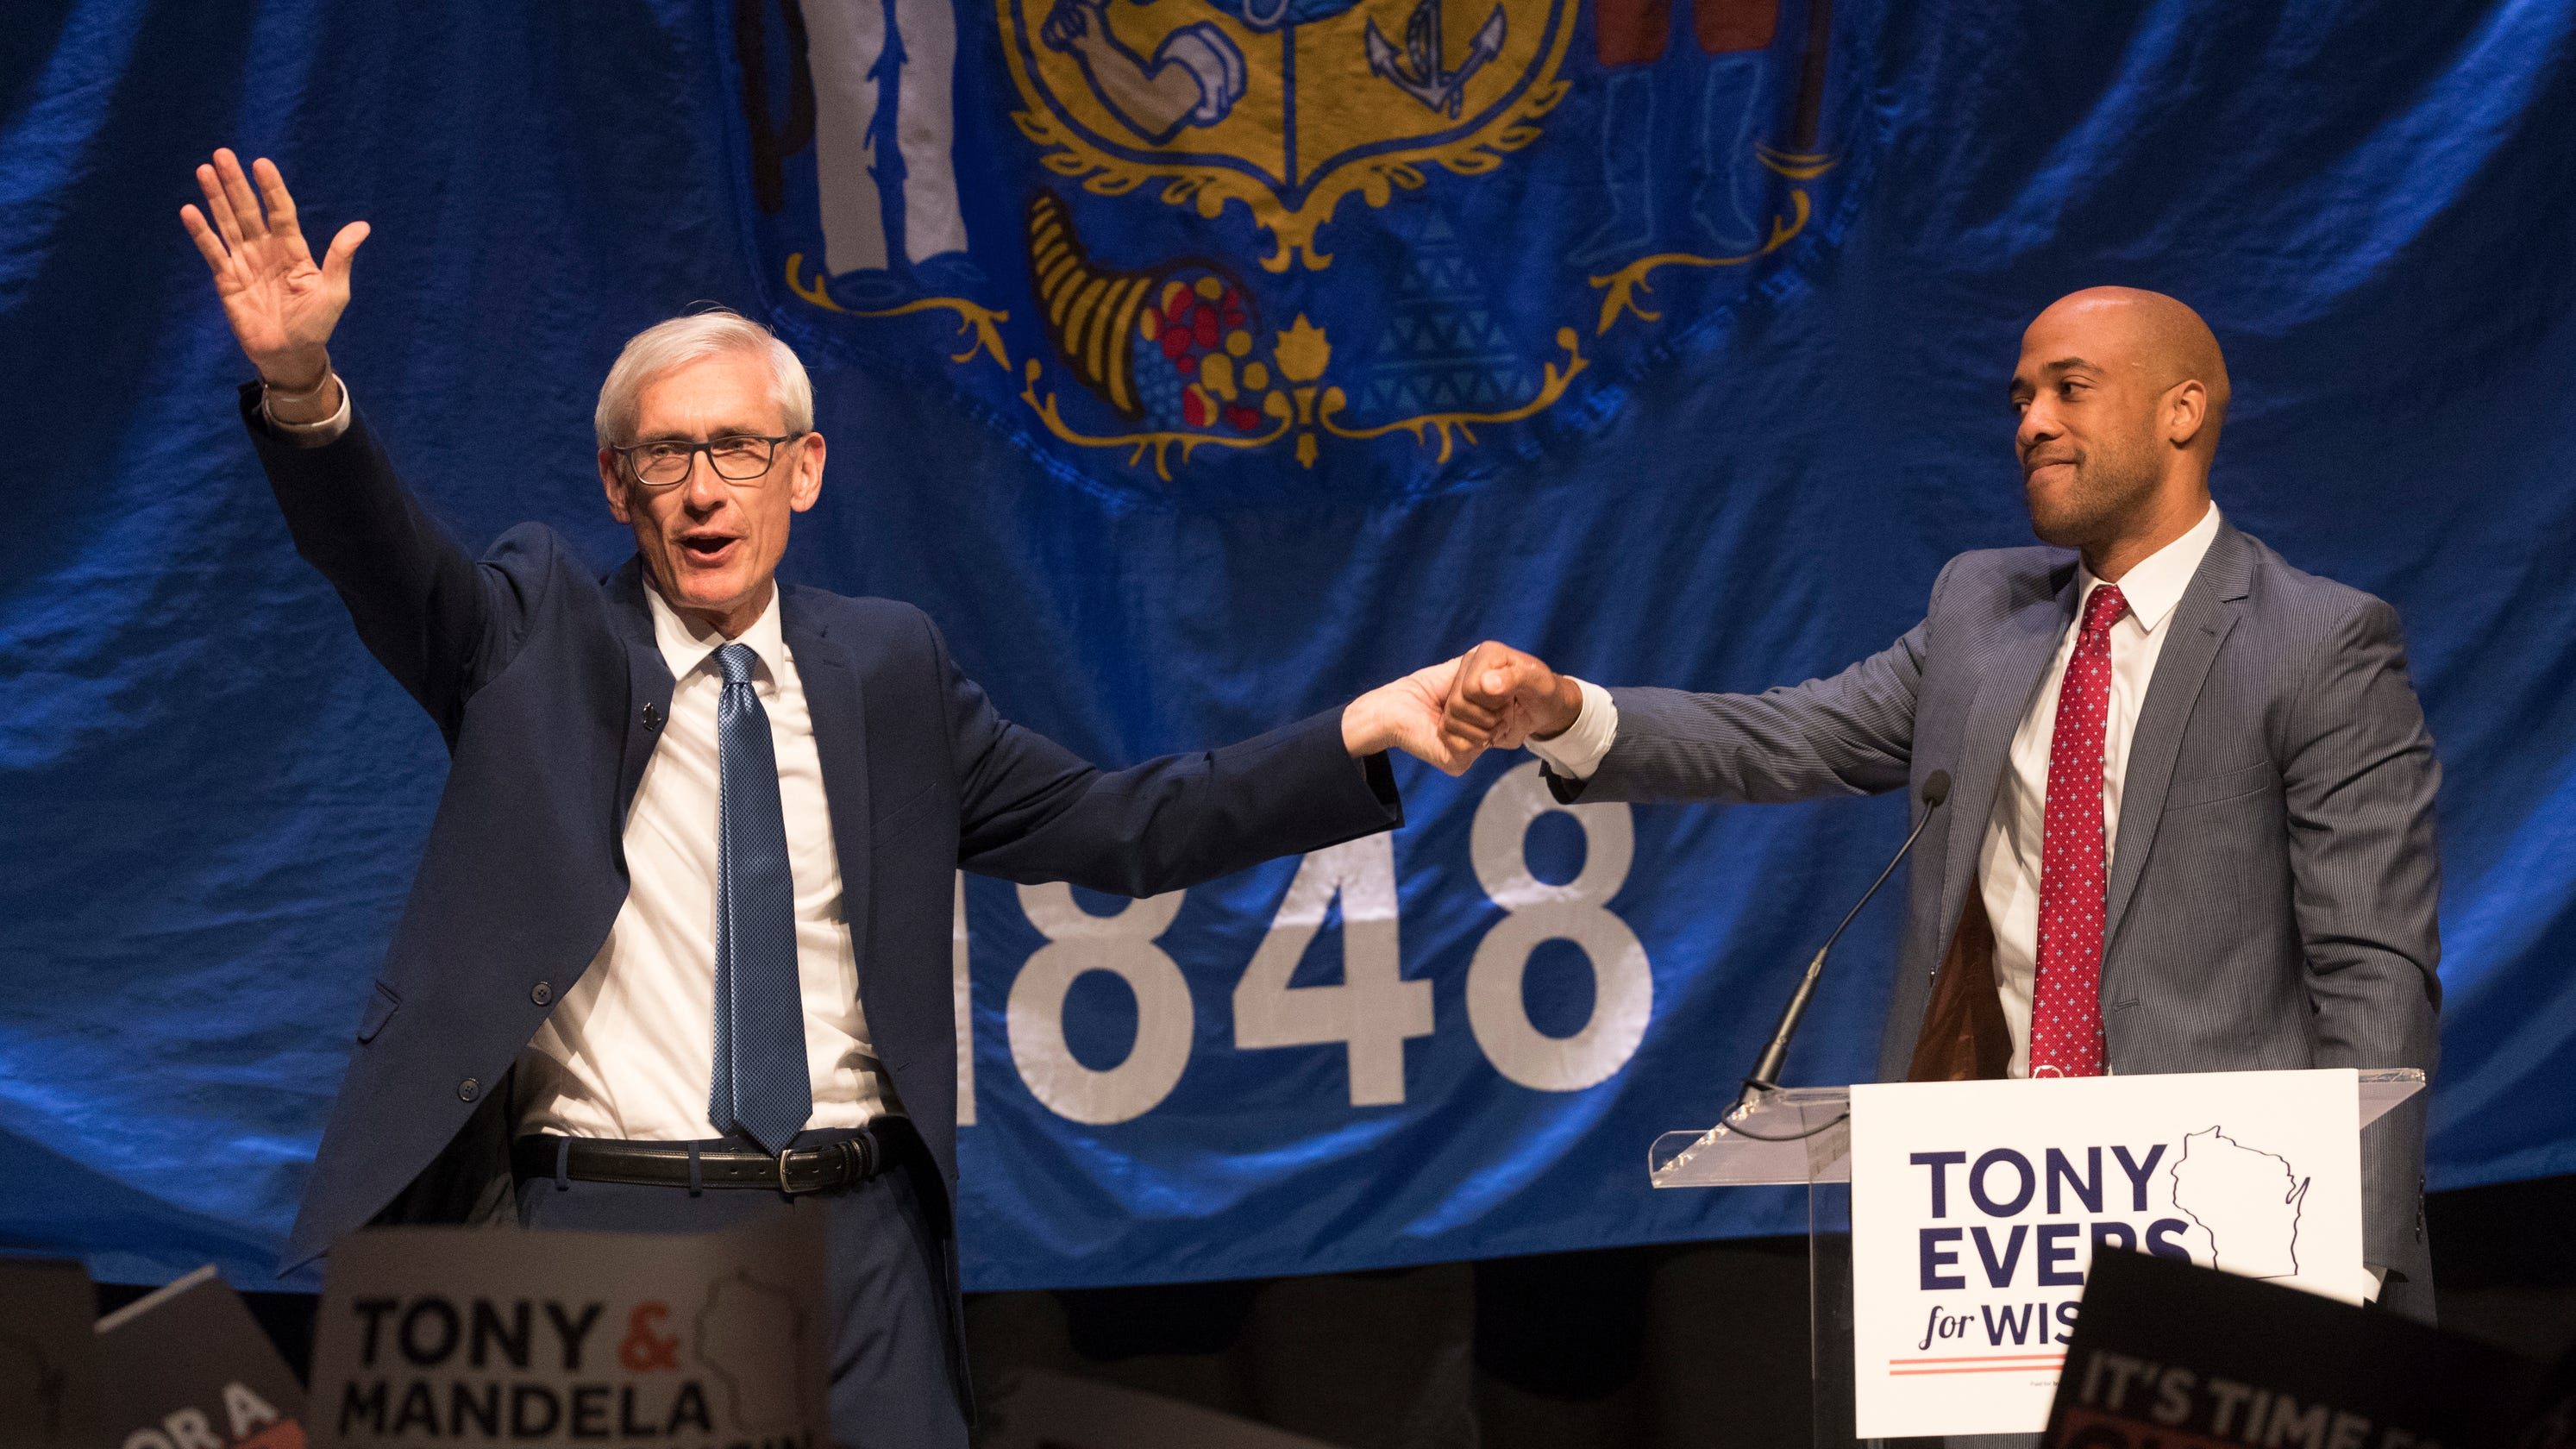 47a73c21436 Wisconsin governor election results  Scott Walker loses to Tony Evers